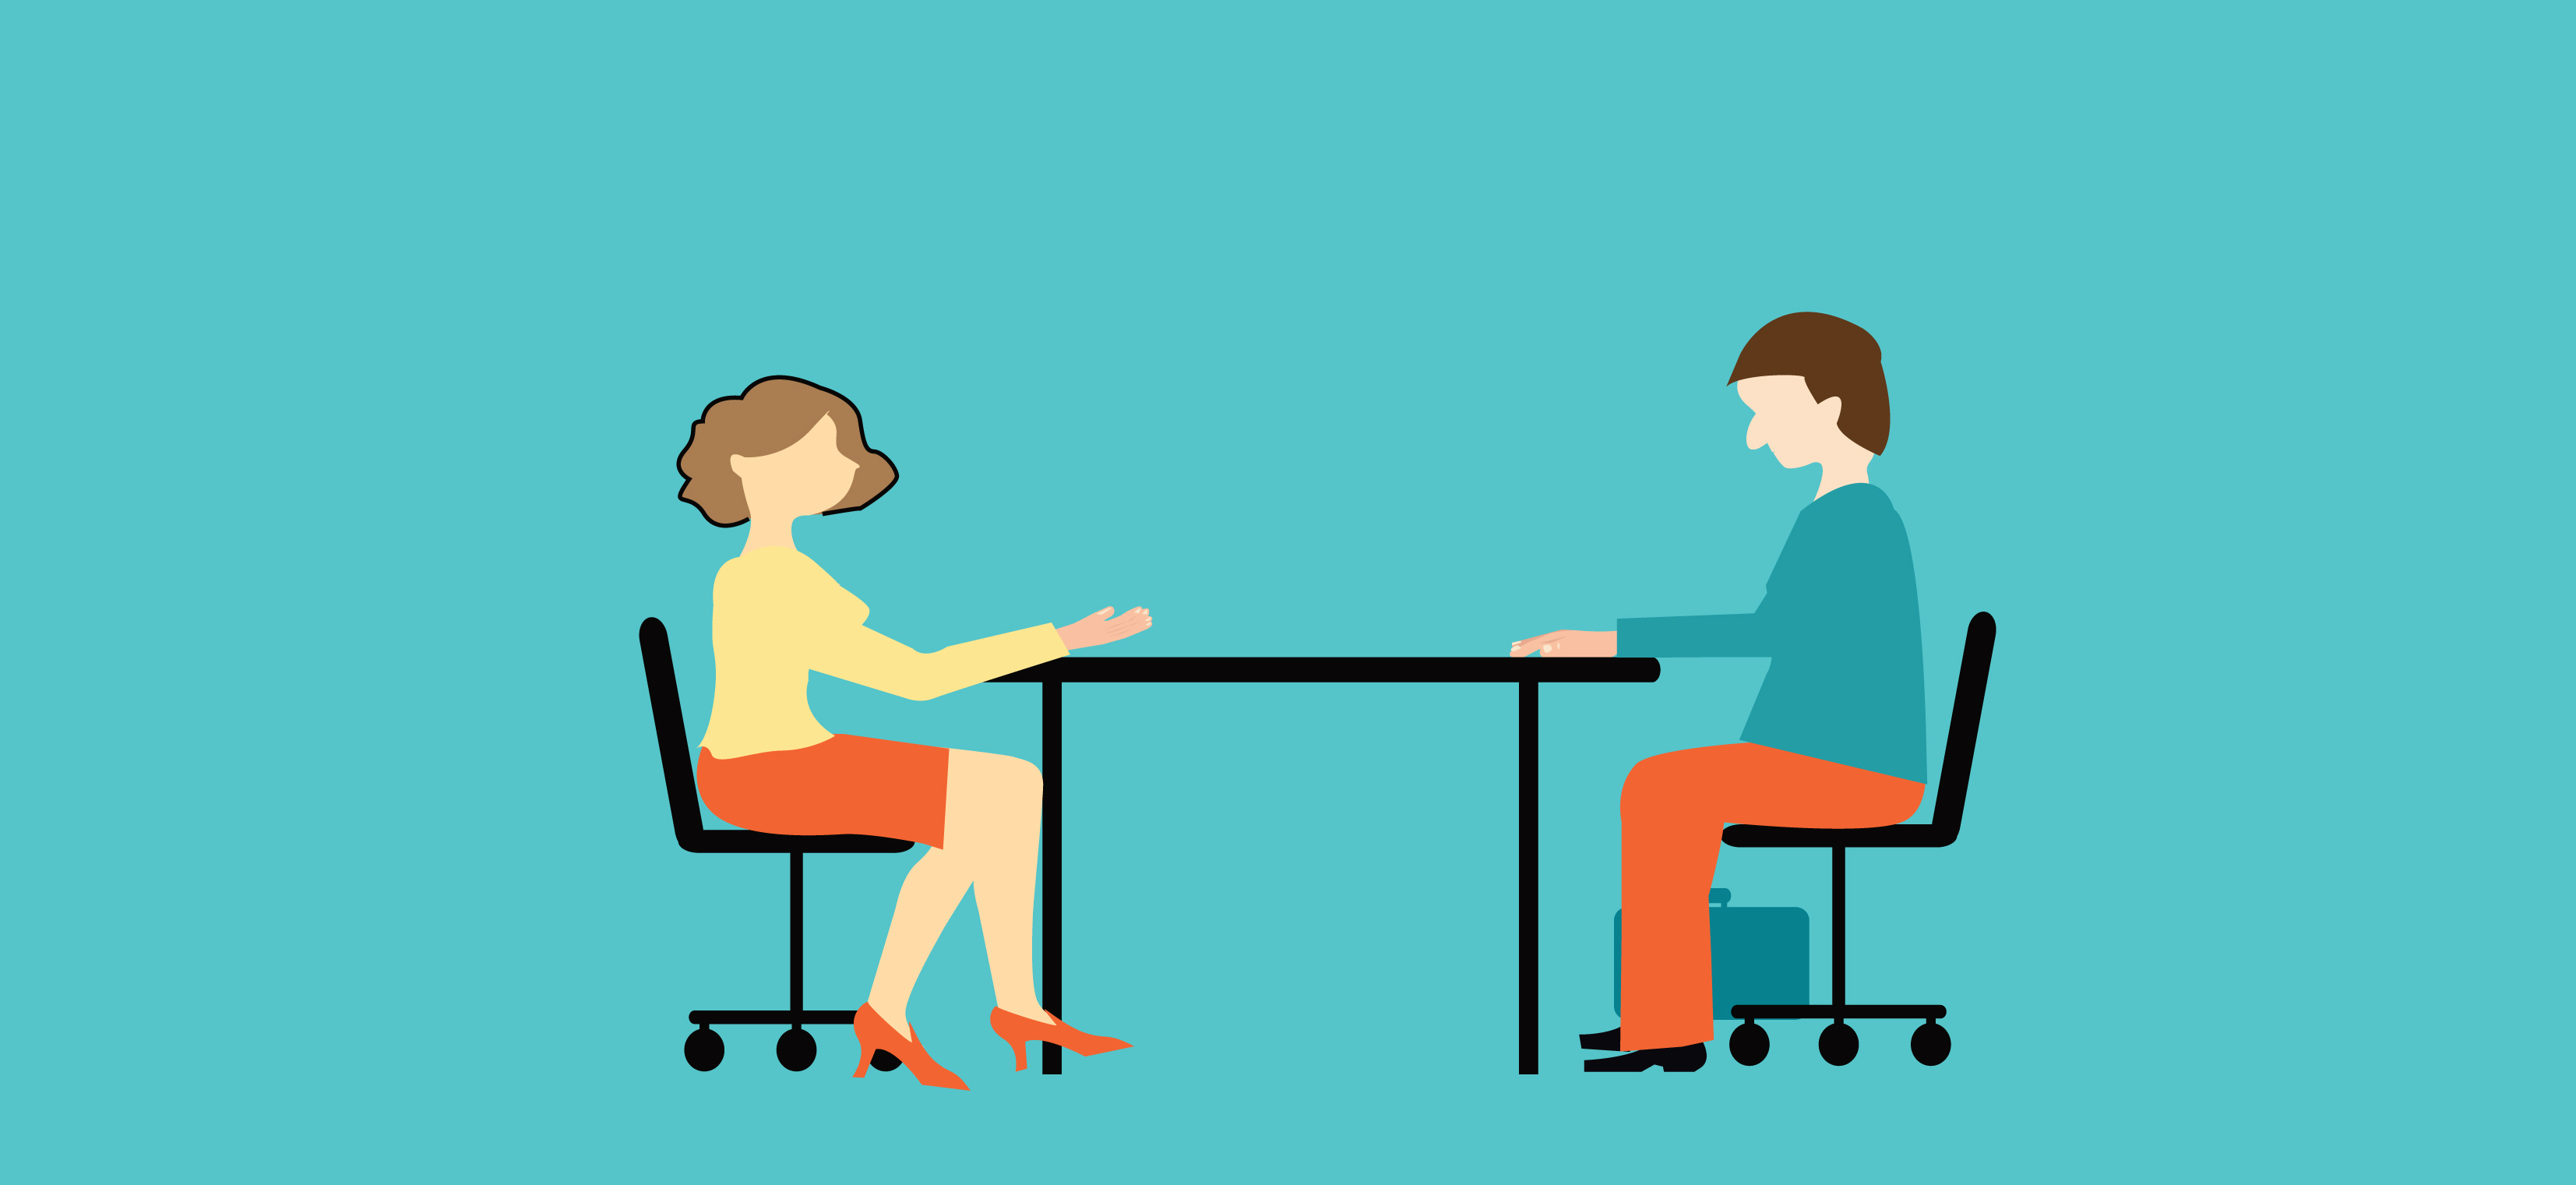 How to interview for a design job